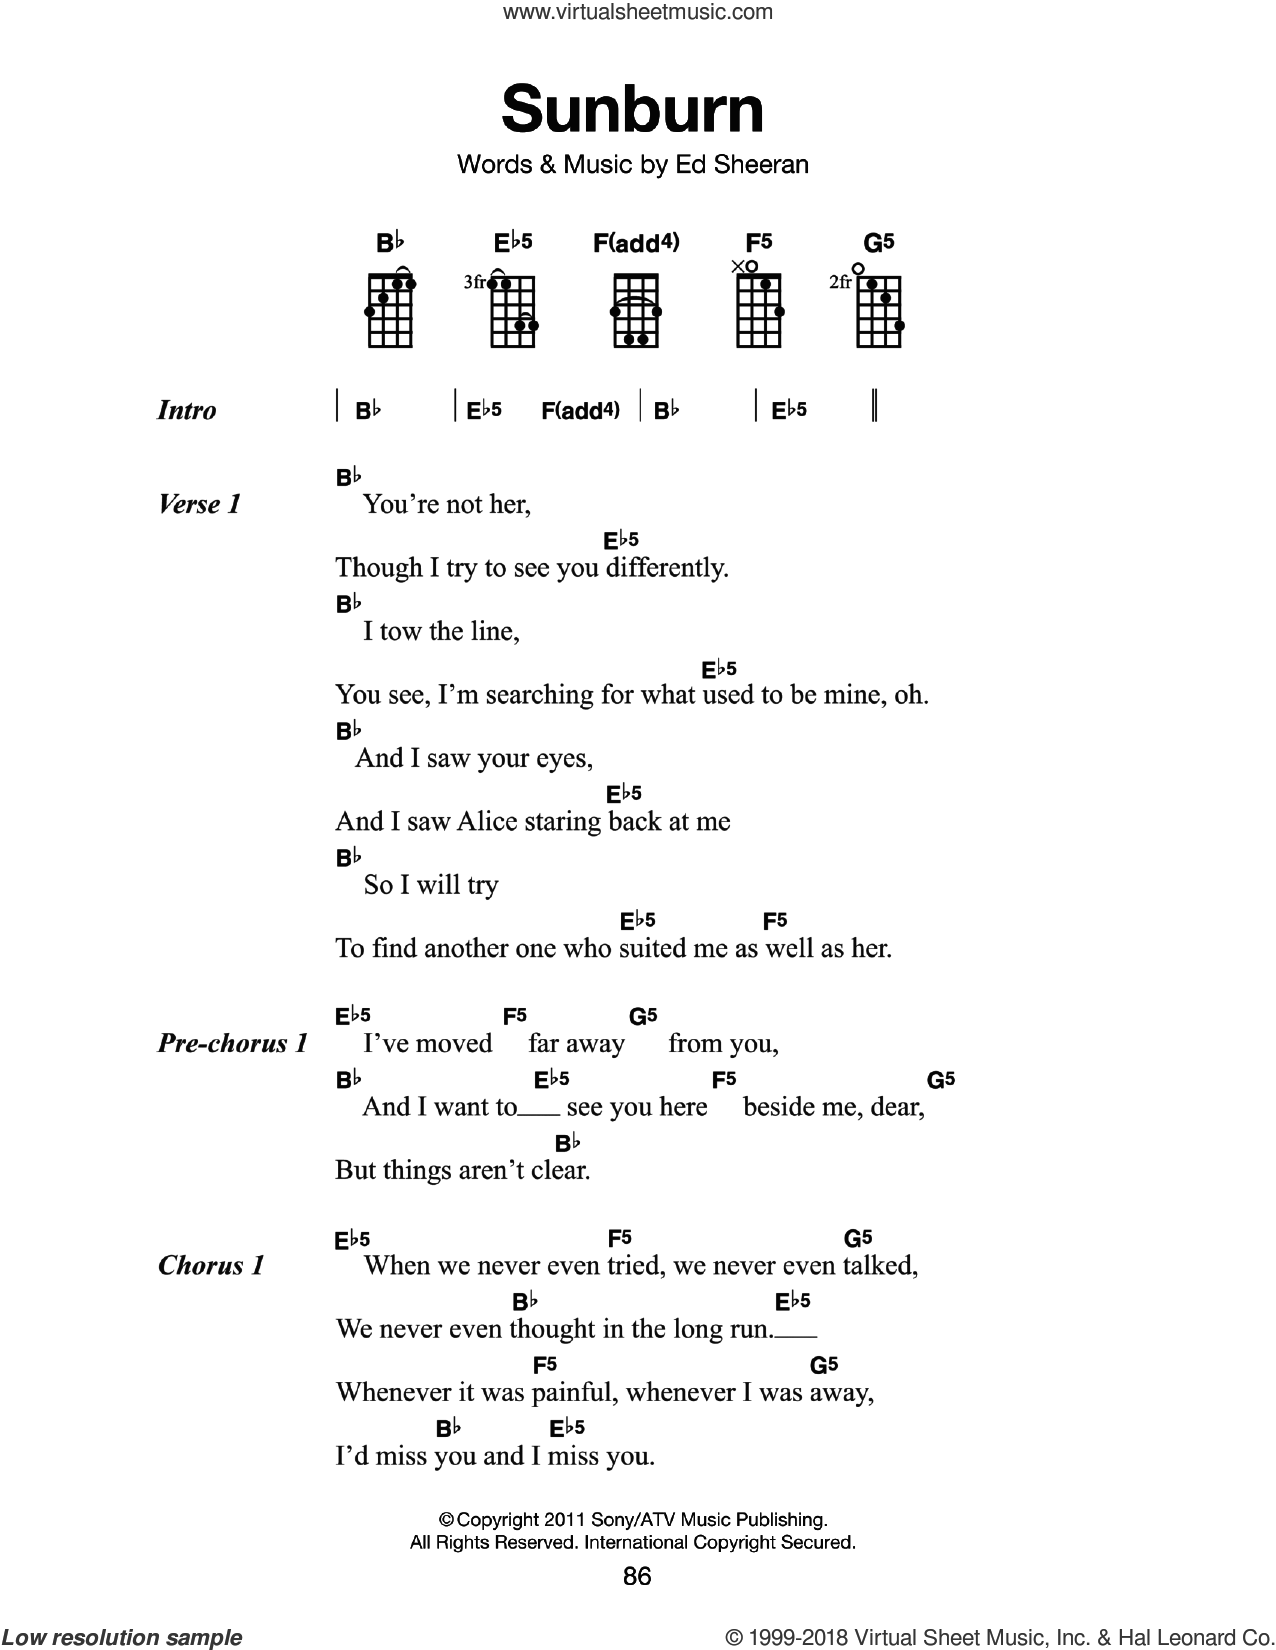 Sunburn sheet music for voice, piano or guitar by Ed Sheeran, intermediate skill level